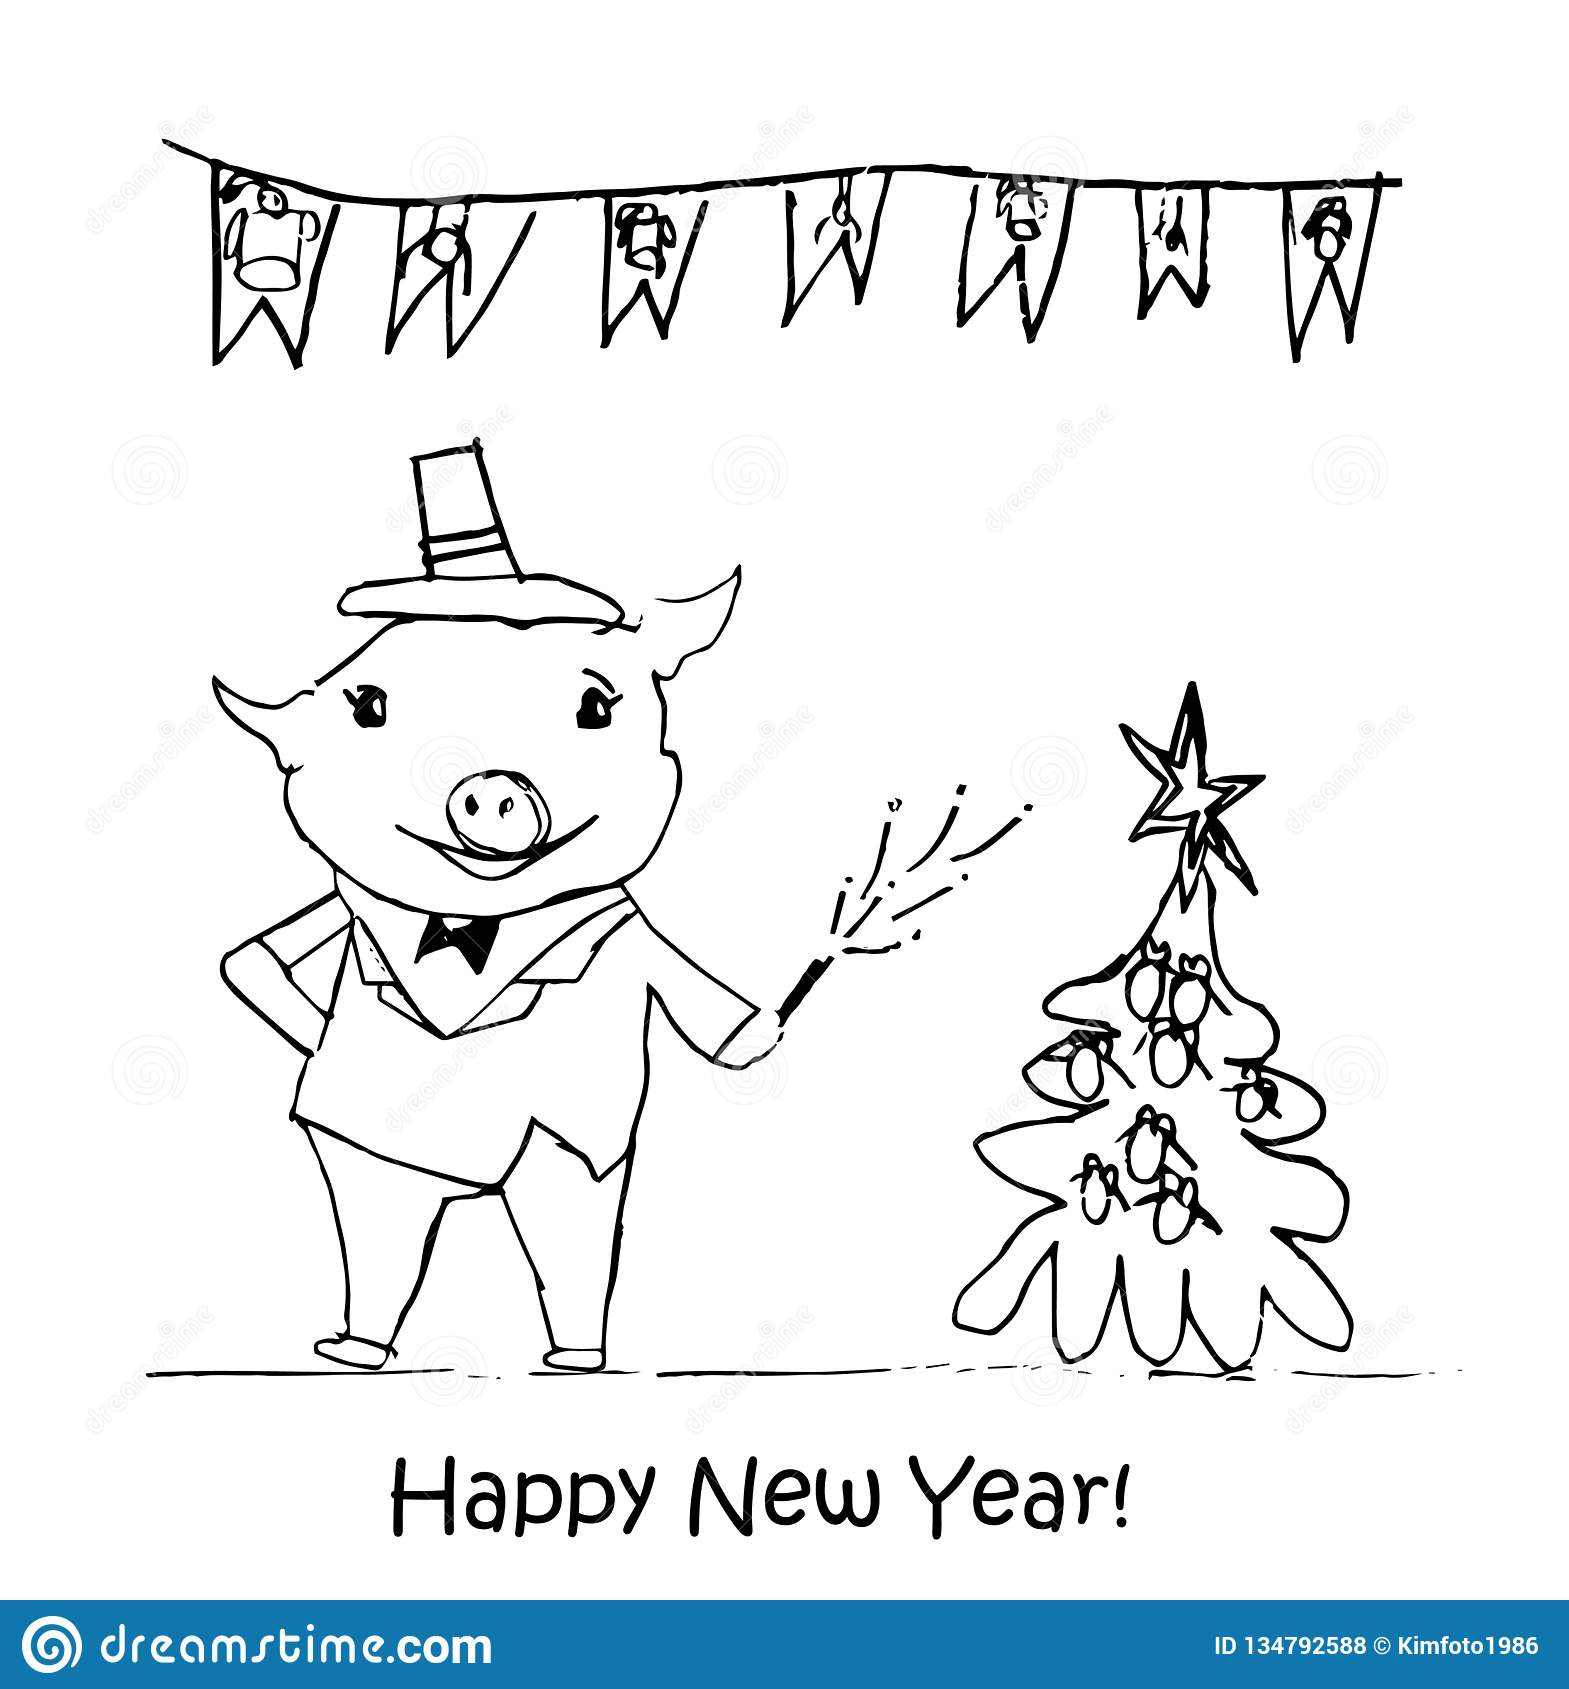 New Year illustration. Children`s drawings with black chalk on a white background. Christmas tree, fur-tree toys, candy, pig, 2019